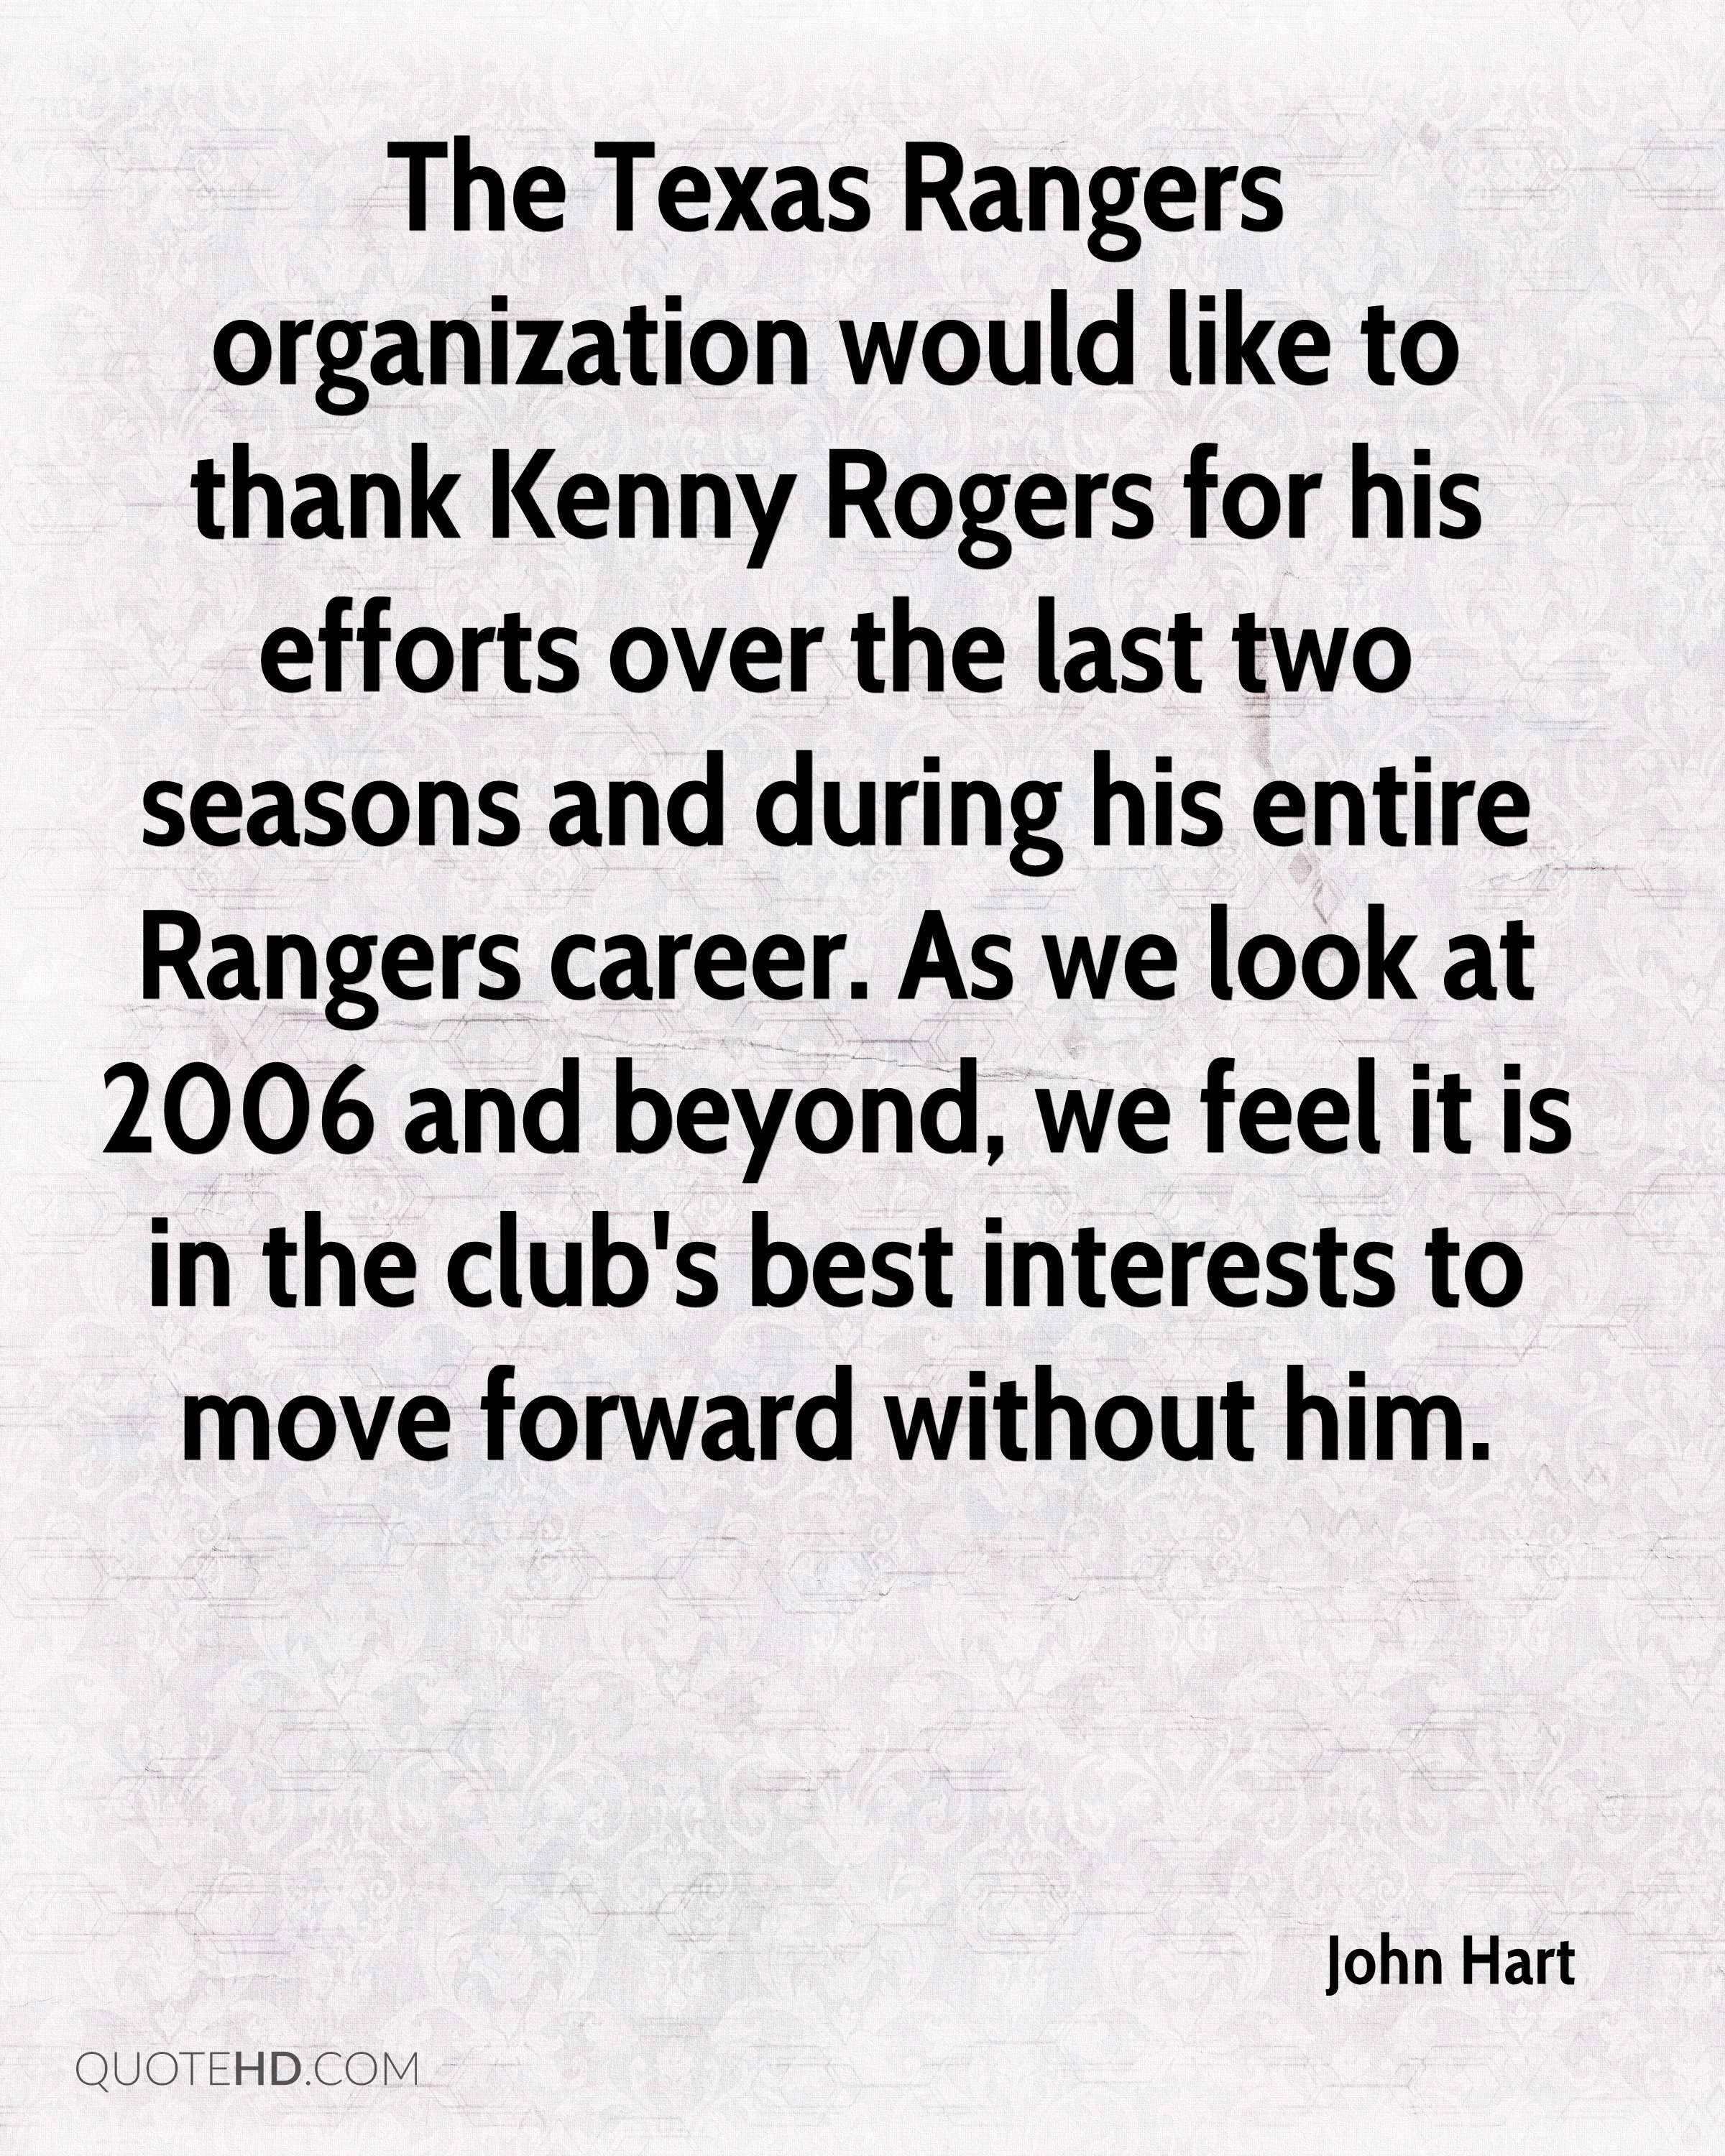 The Texas Rangers organization would like to thank Kenny Rogers for his efforts over the last two seasons and during his entire Rangers career. As we look at 2006 and beyond, we feel it is in the club's best interests to move forward without him.